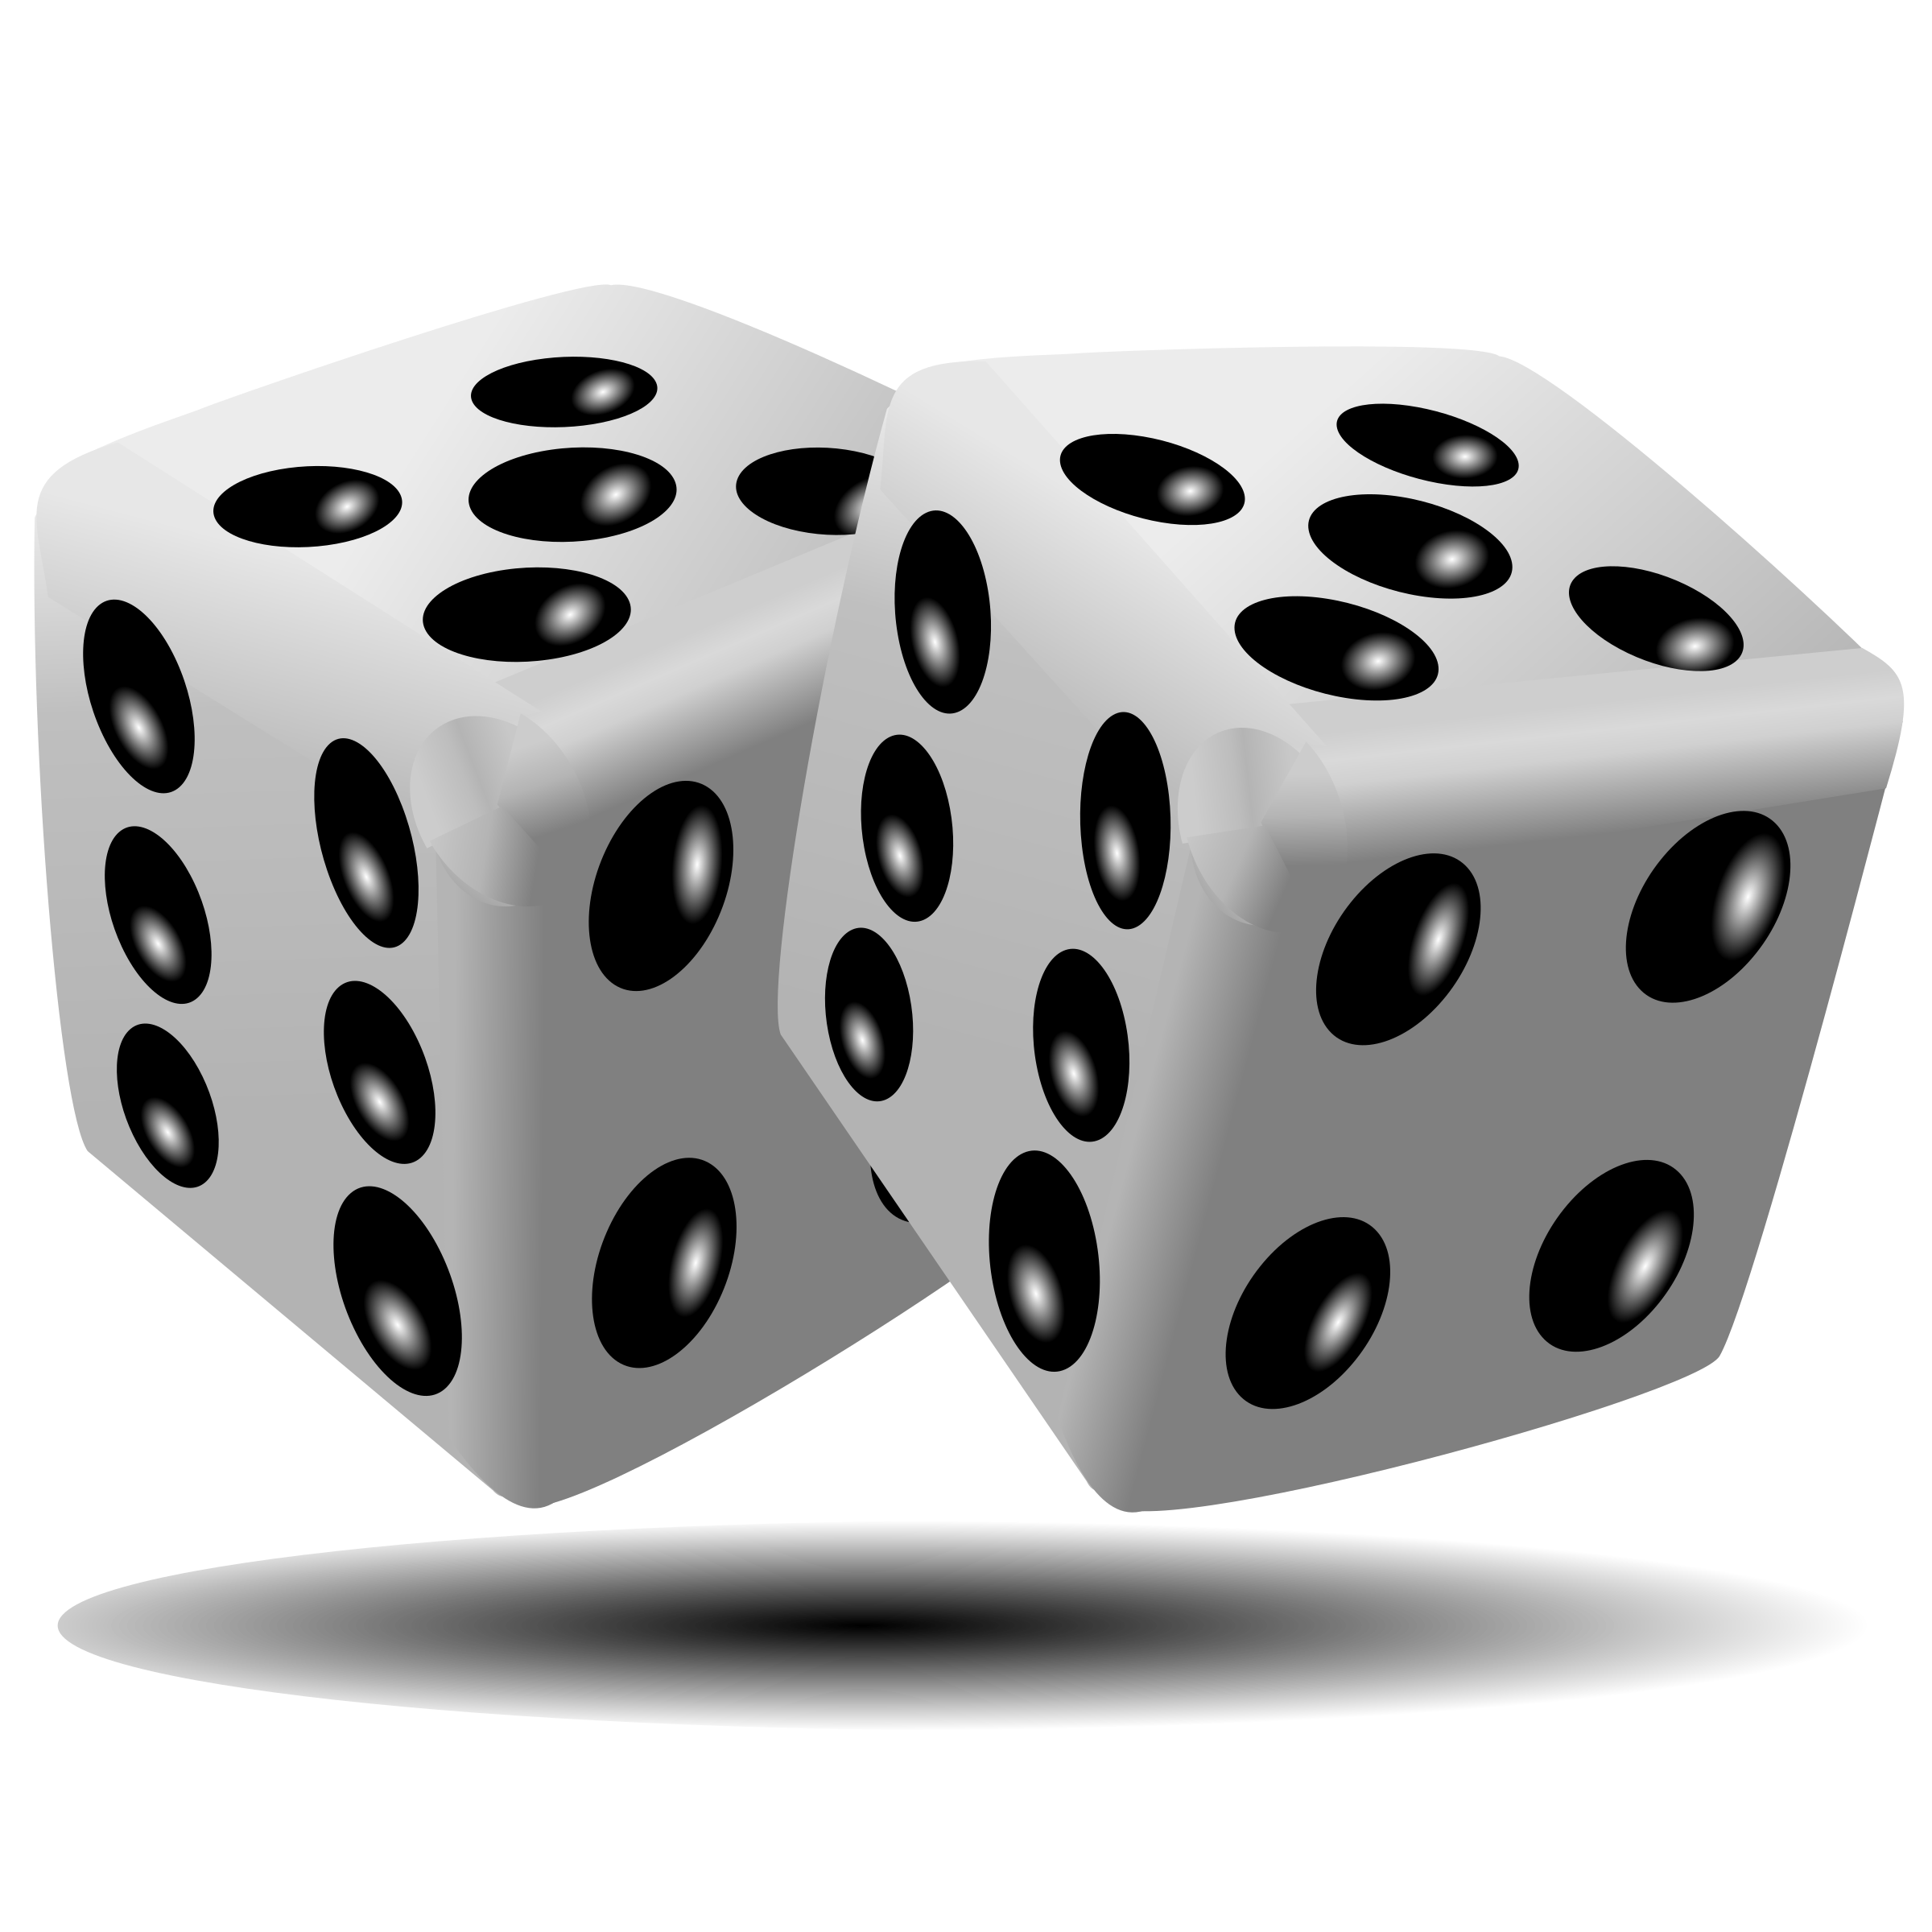 Pair of dice by wjase